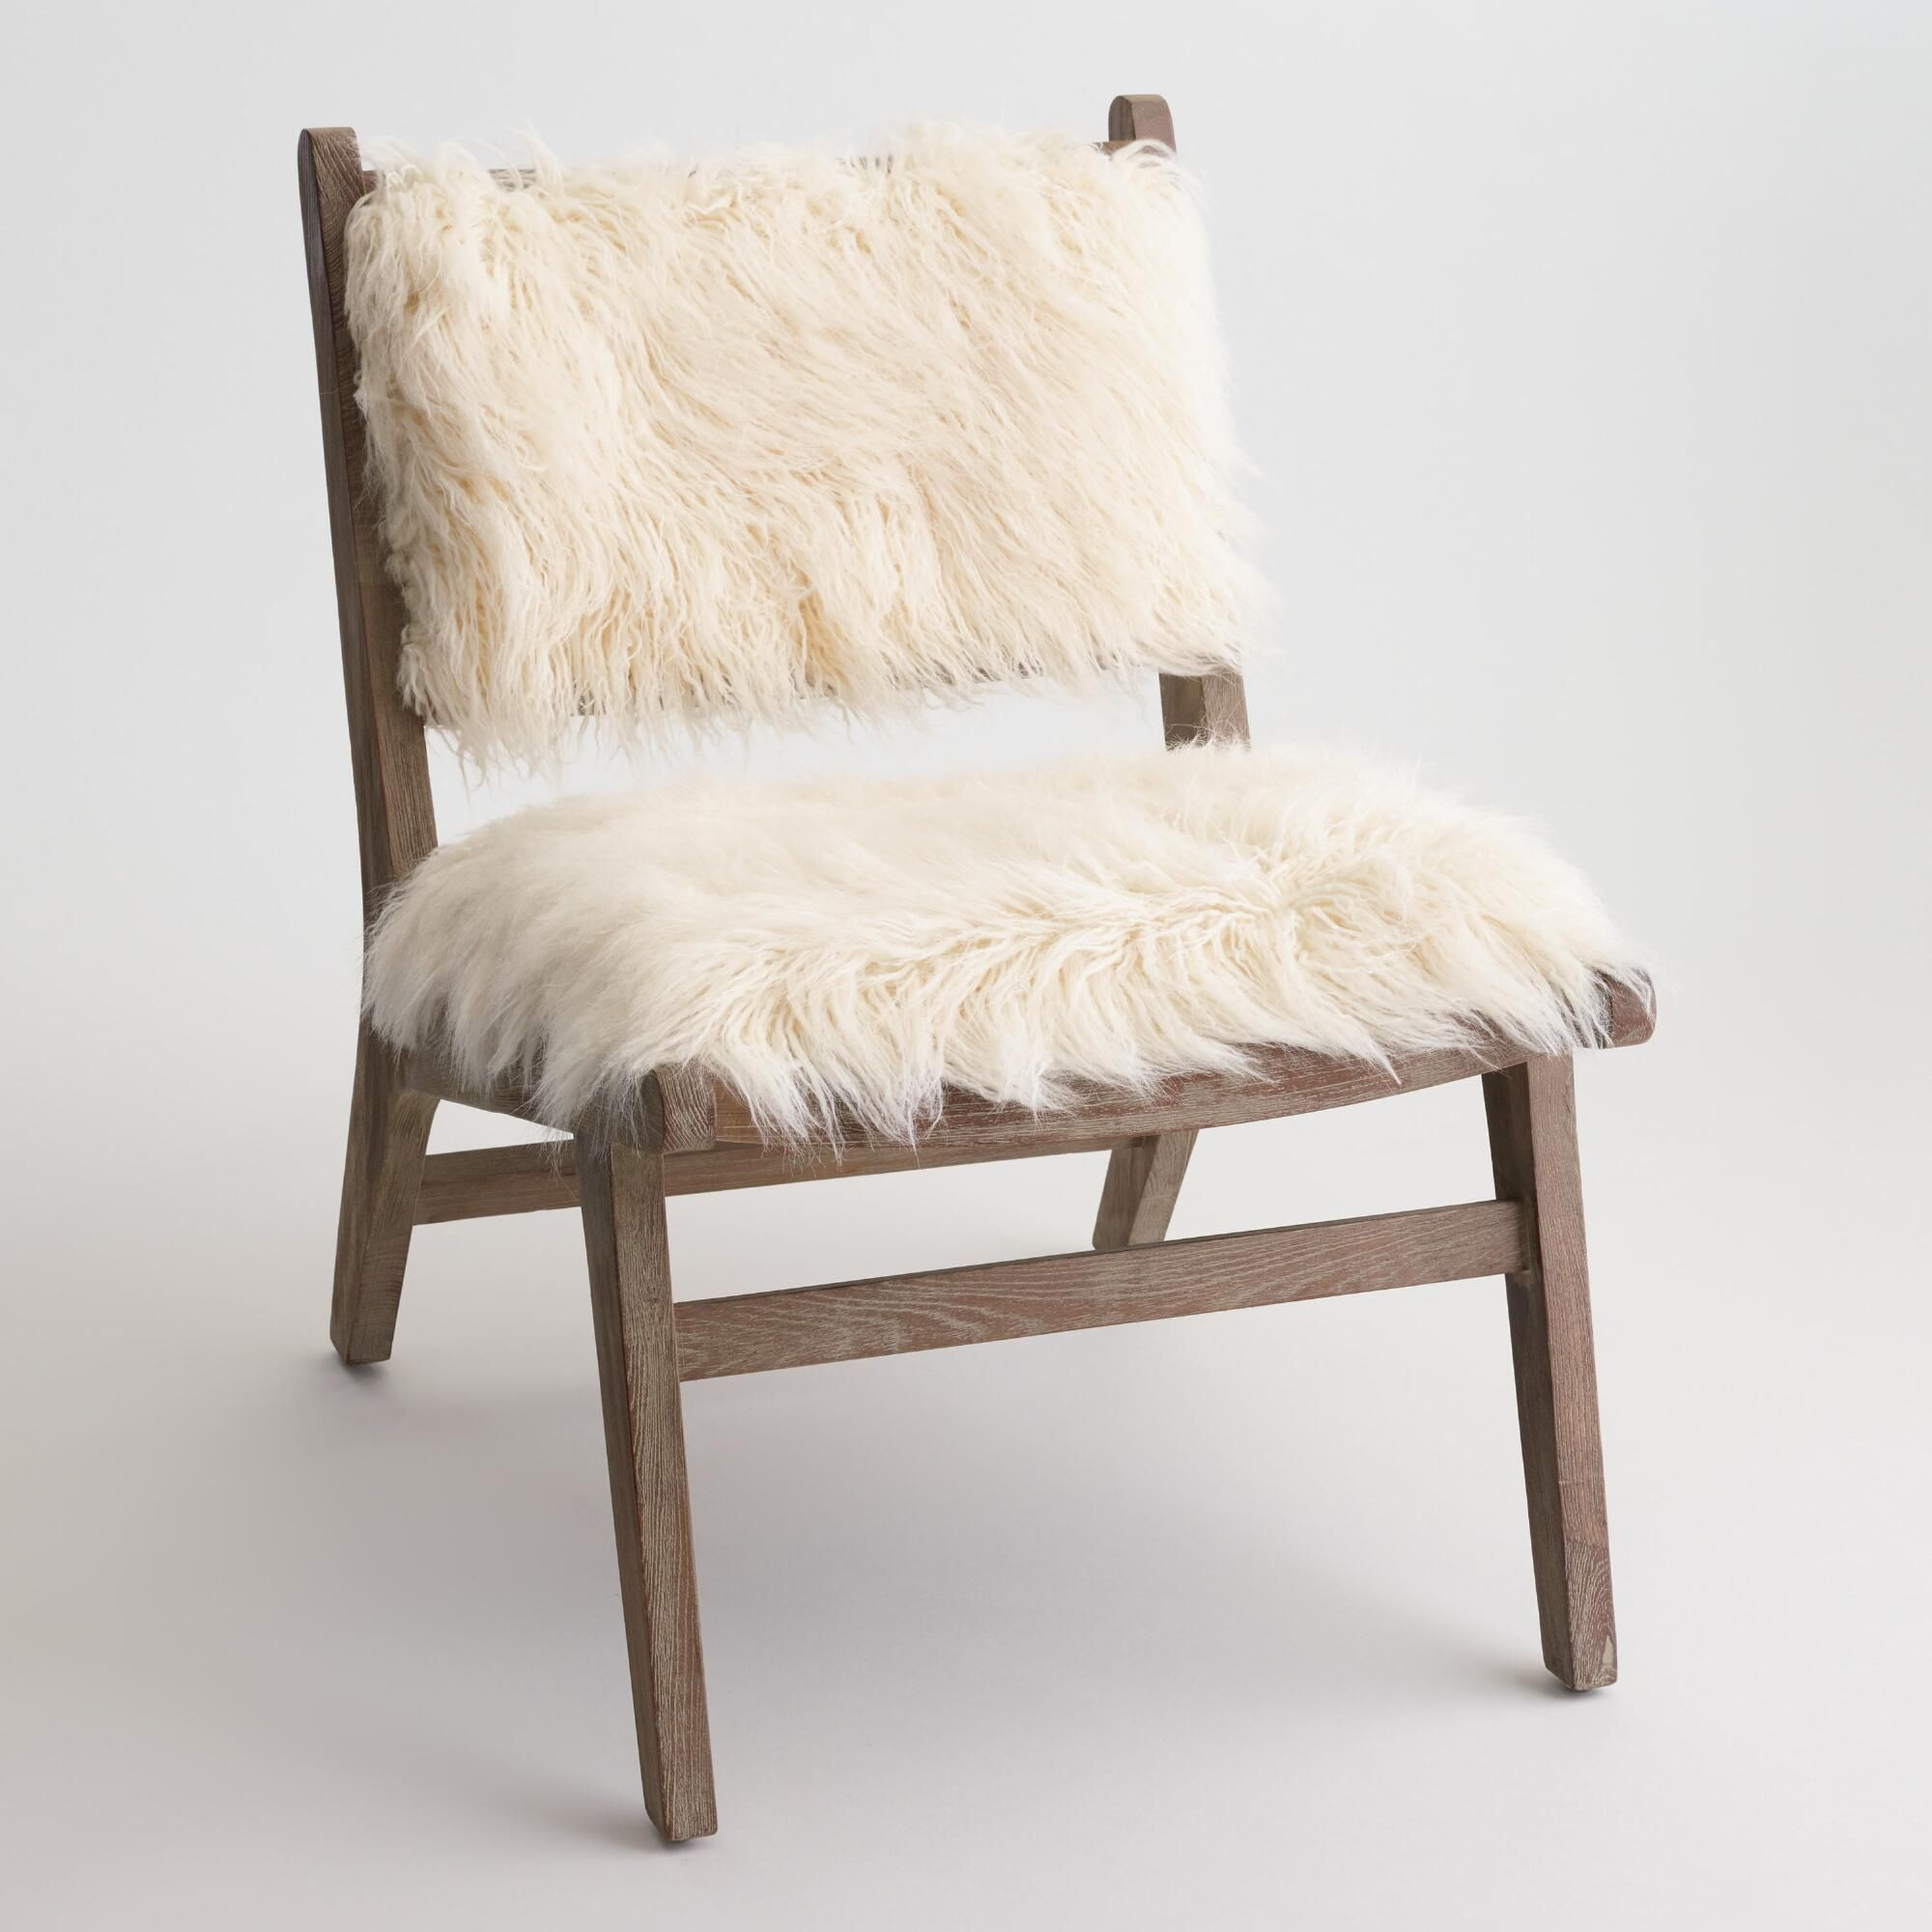 wood frame accent chairs. Our Cozy Accent Chair Features An Exposed Elm Wood Frame With A Distressed Gray Wash Finish And Soft Faux Flokati Upholstery For Boho-chic Look. Chairs